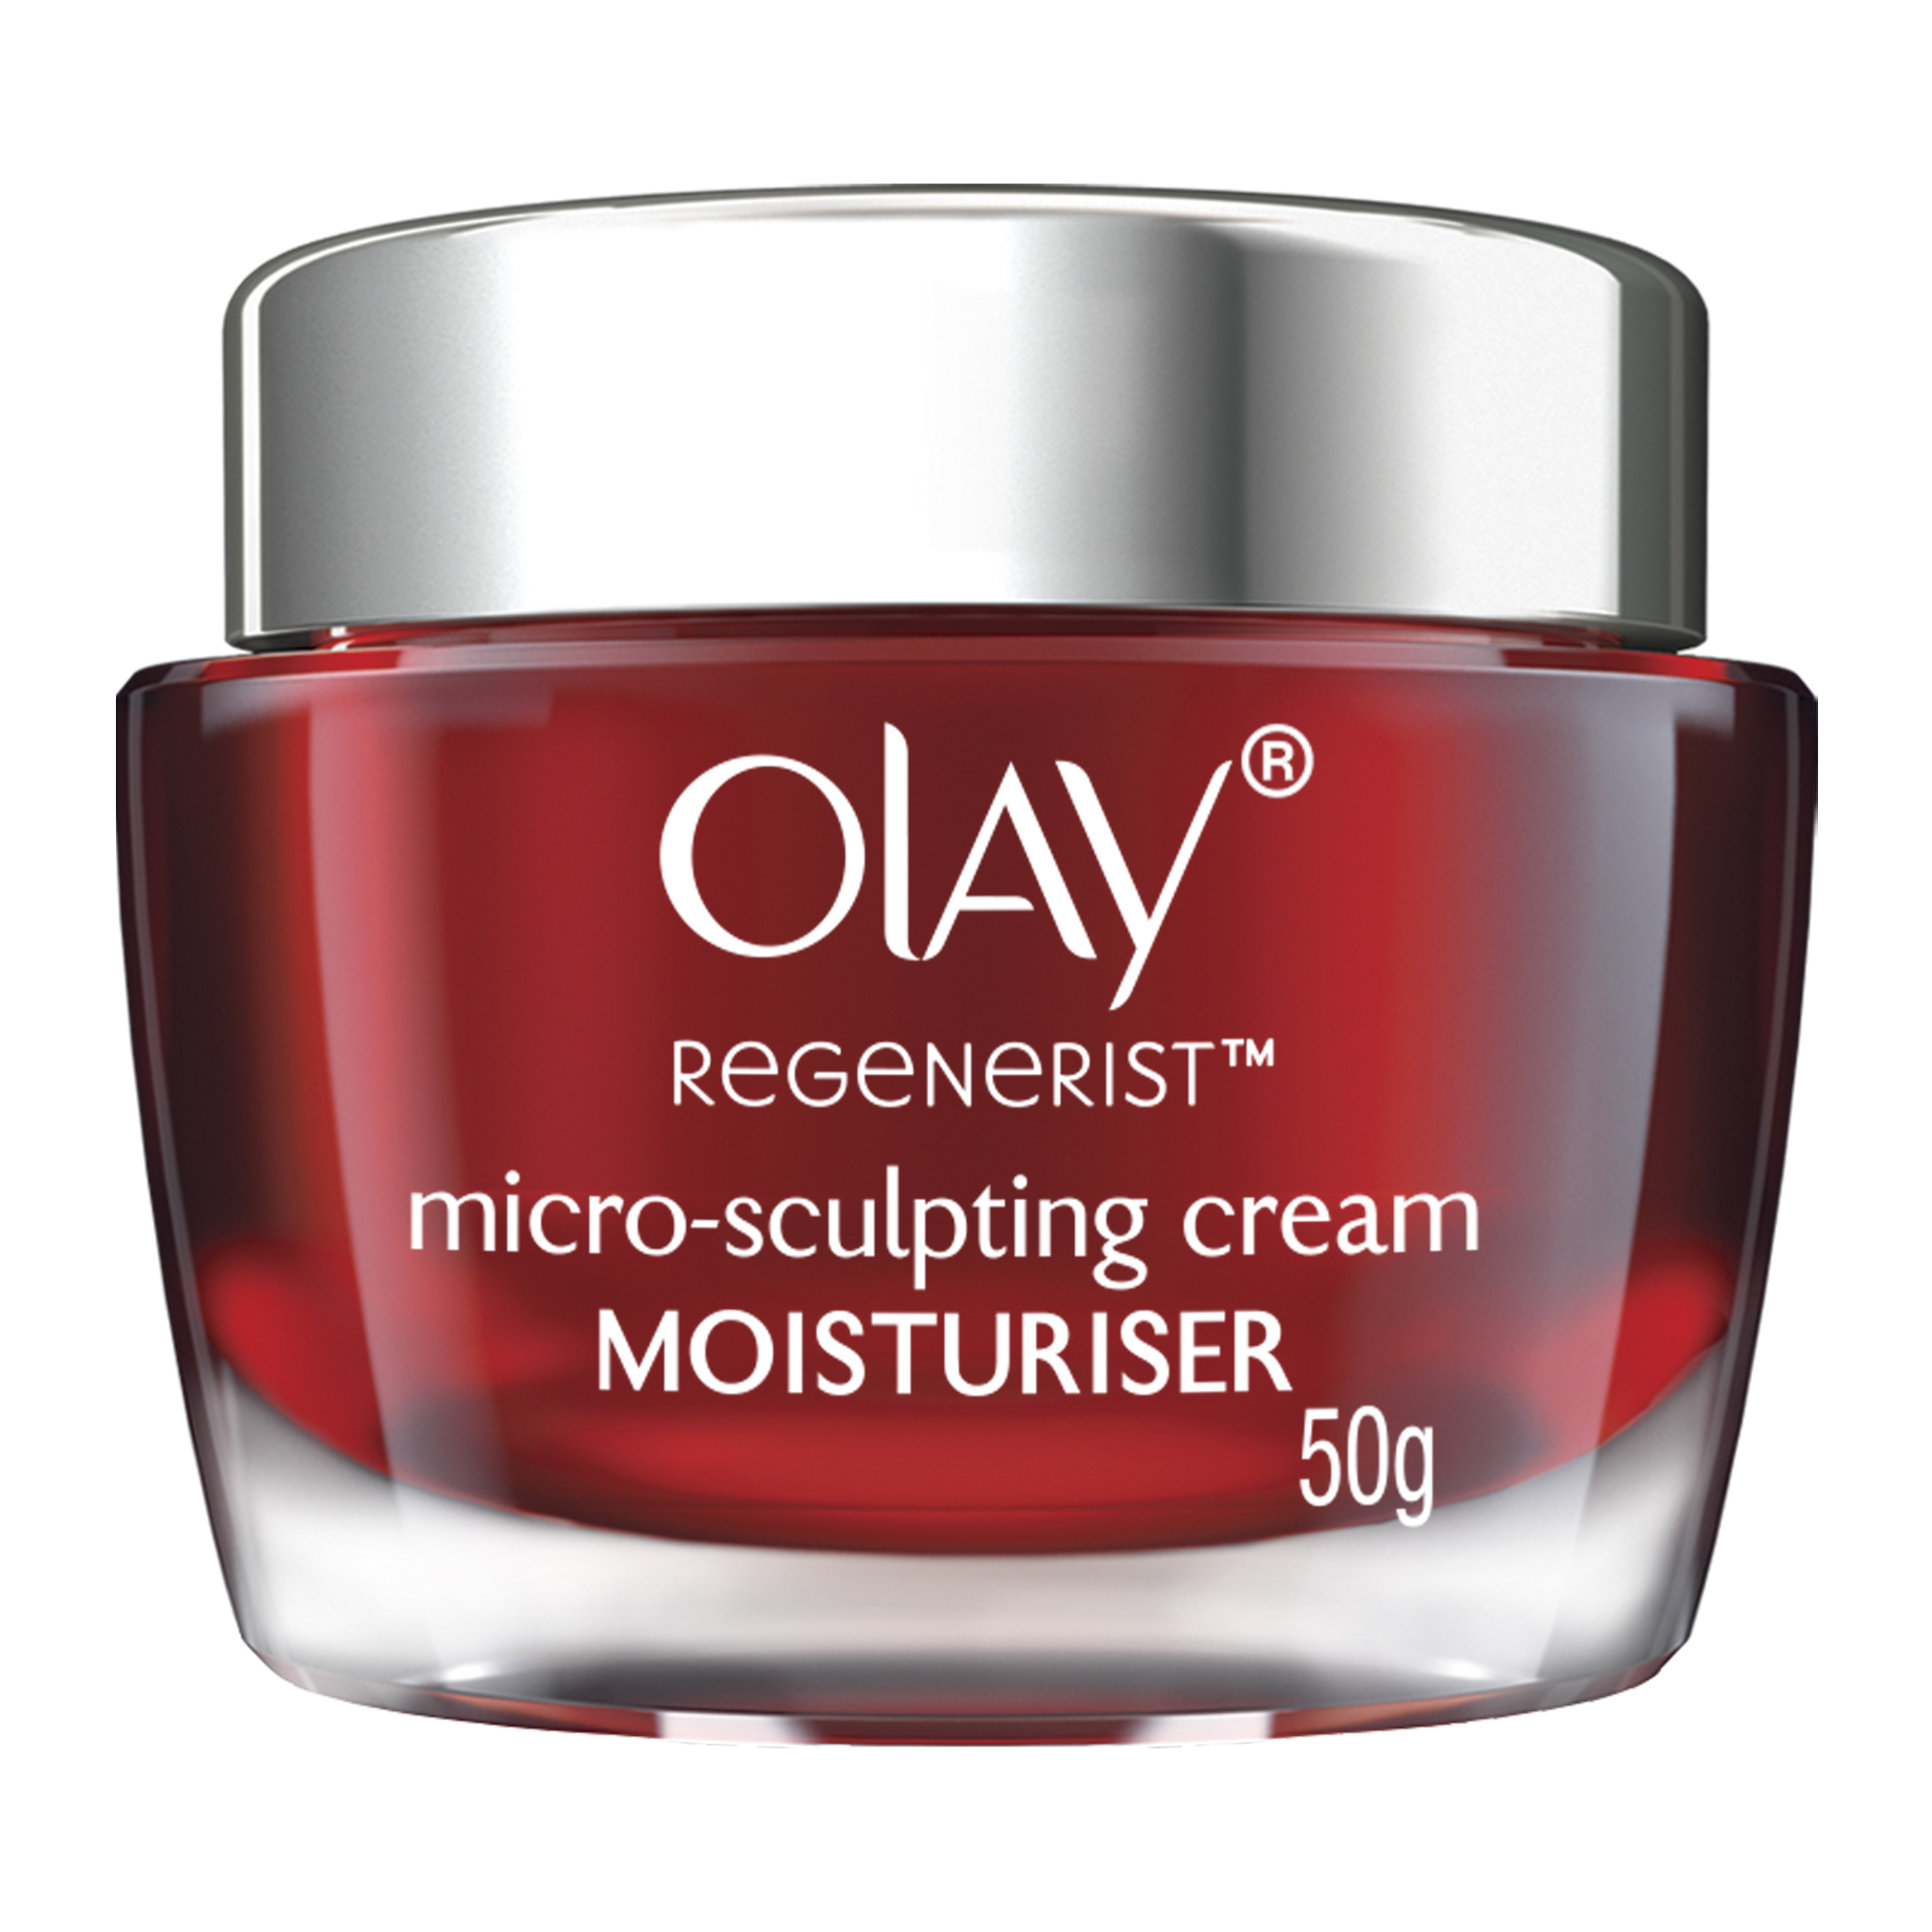 dcd1416e8a0 Olay Regenerist Microsculpting Cream Review – Best Infrared red ...